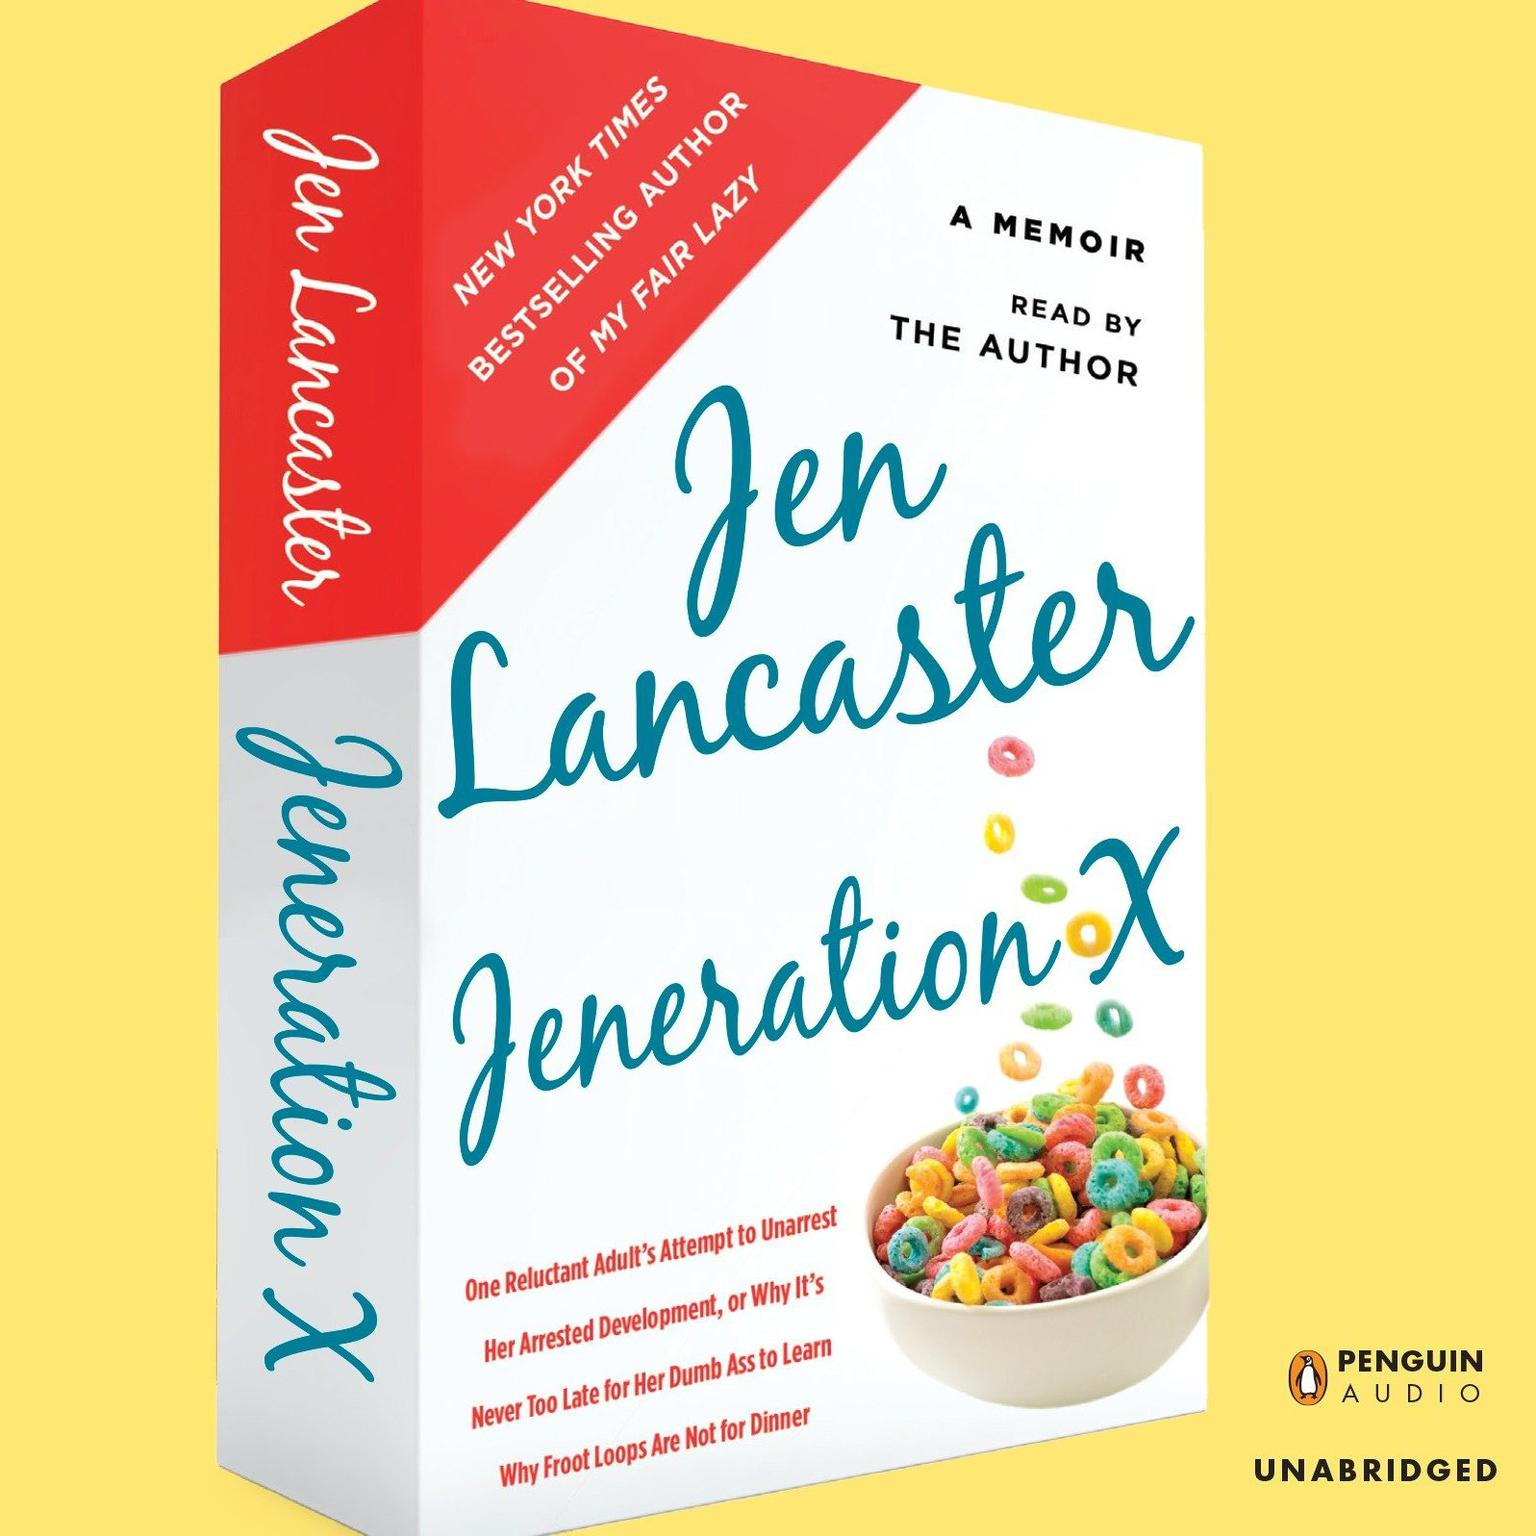 Printable Jeneration X: One Reluctant Adult's Attempt to Unarrest Her Arrested Development; Or, Why It's  Never Too Late for Her Dumb Ass to Learn Why Froot Loops Are Not for Dinner Audiobook Cover Art